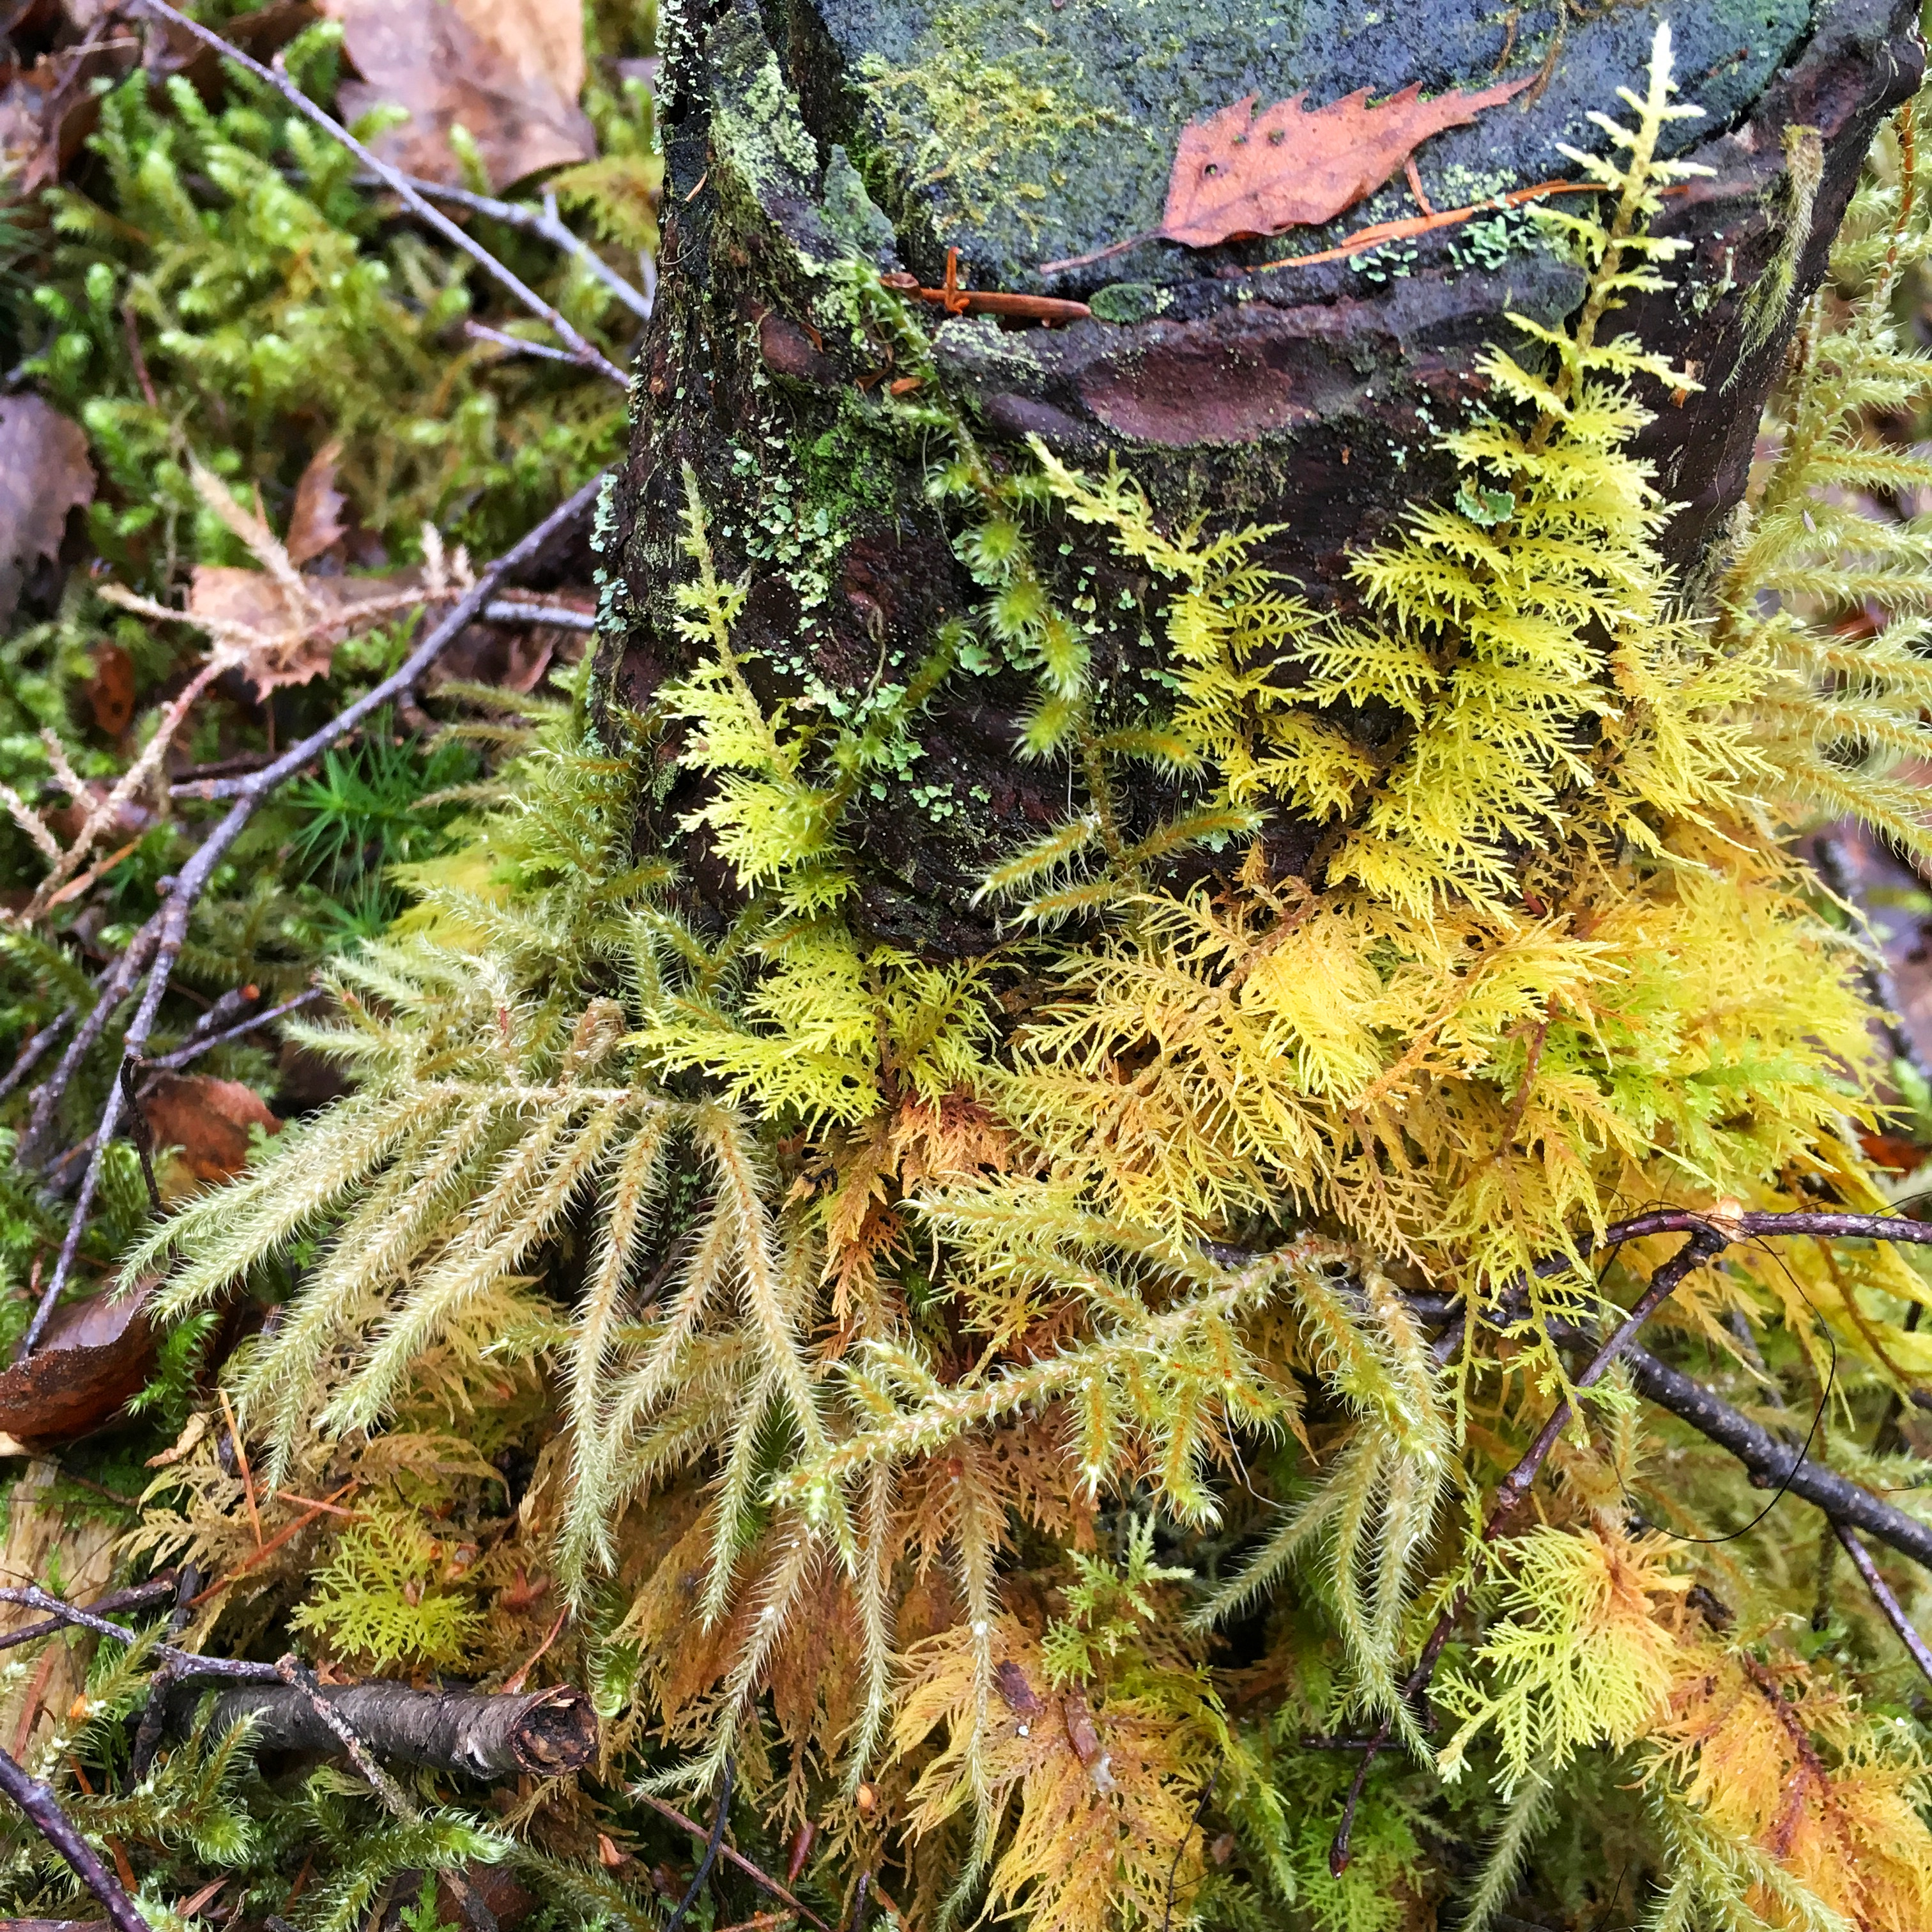 Mosses & lichen on ancient Oaks